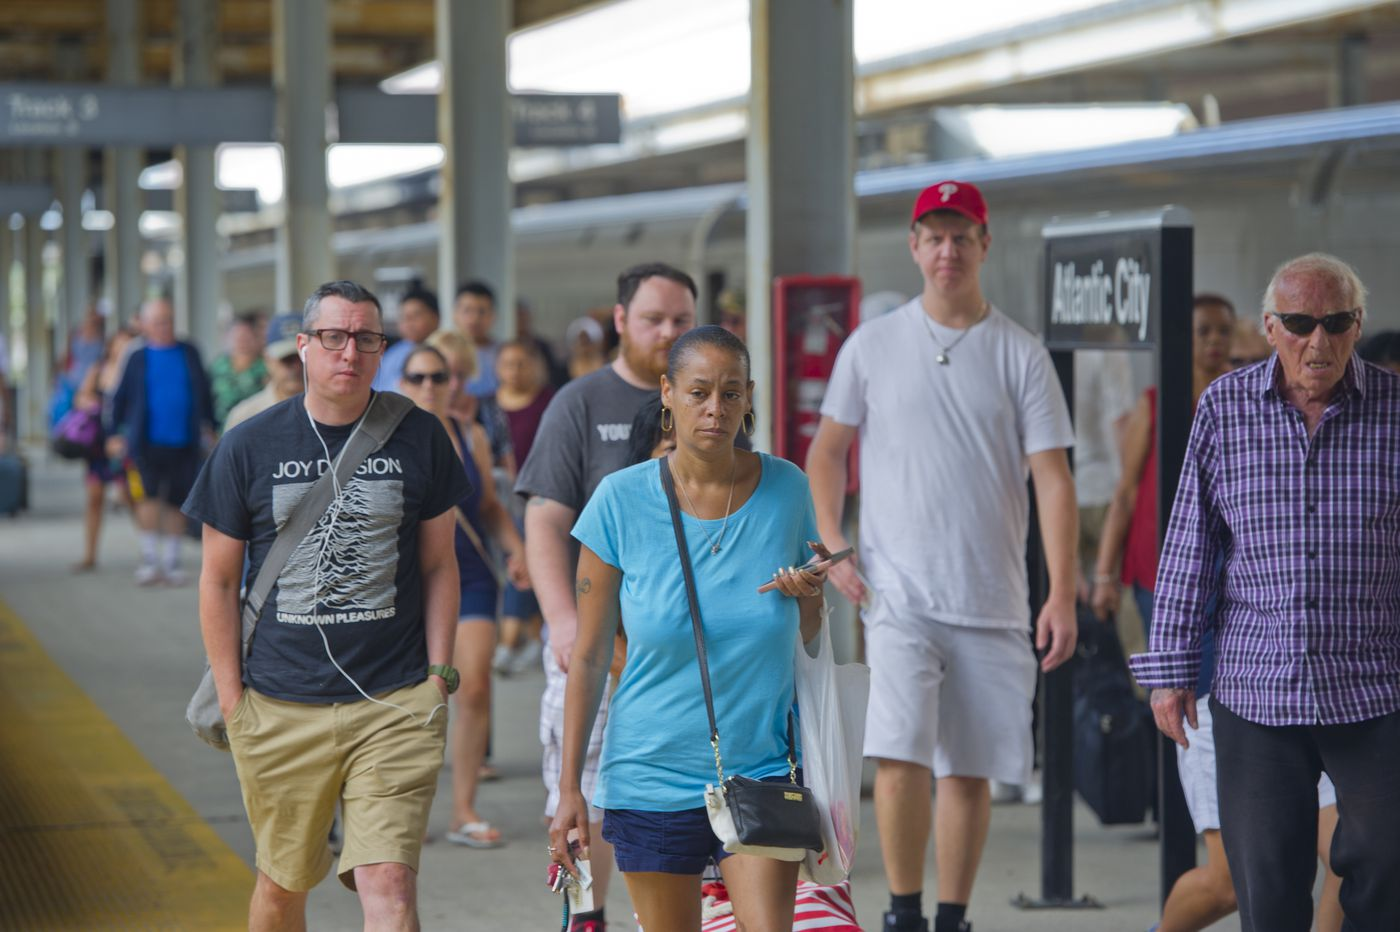 Riders fear A.C. rail shutdown, which Philly tourist traps are worth it? | Morning Newsletter